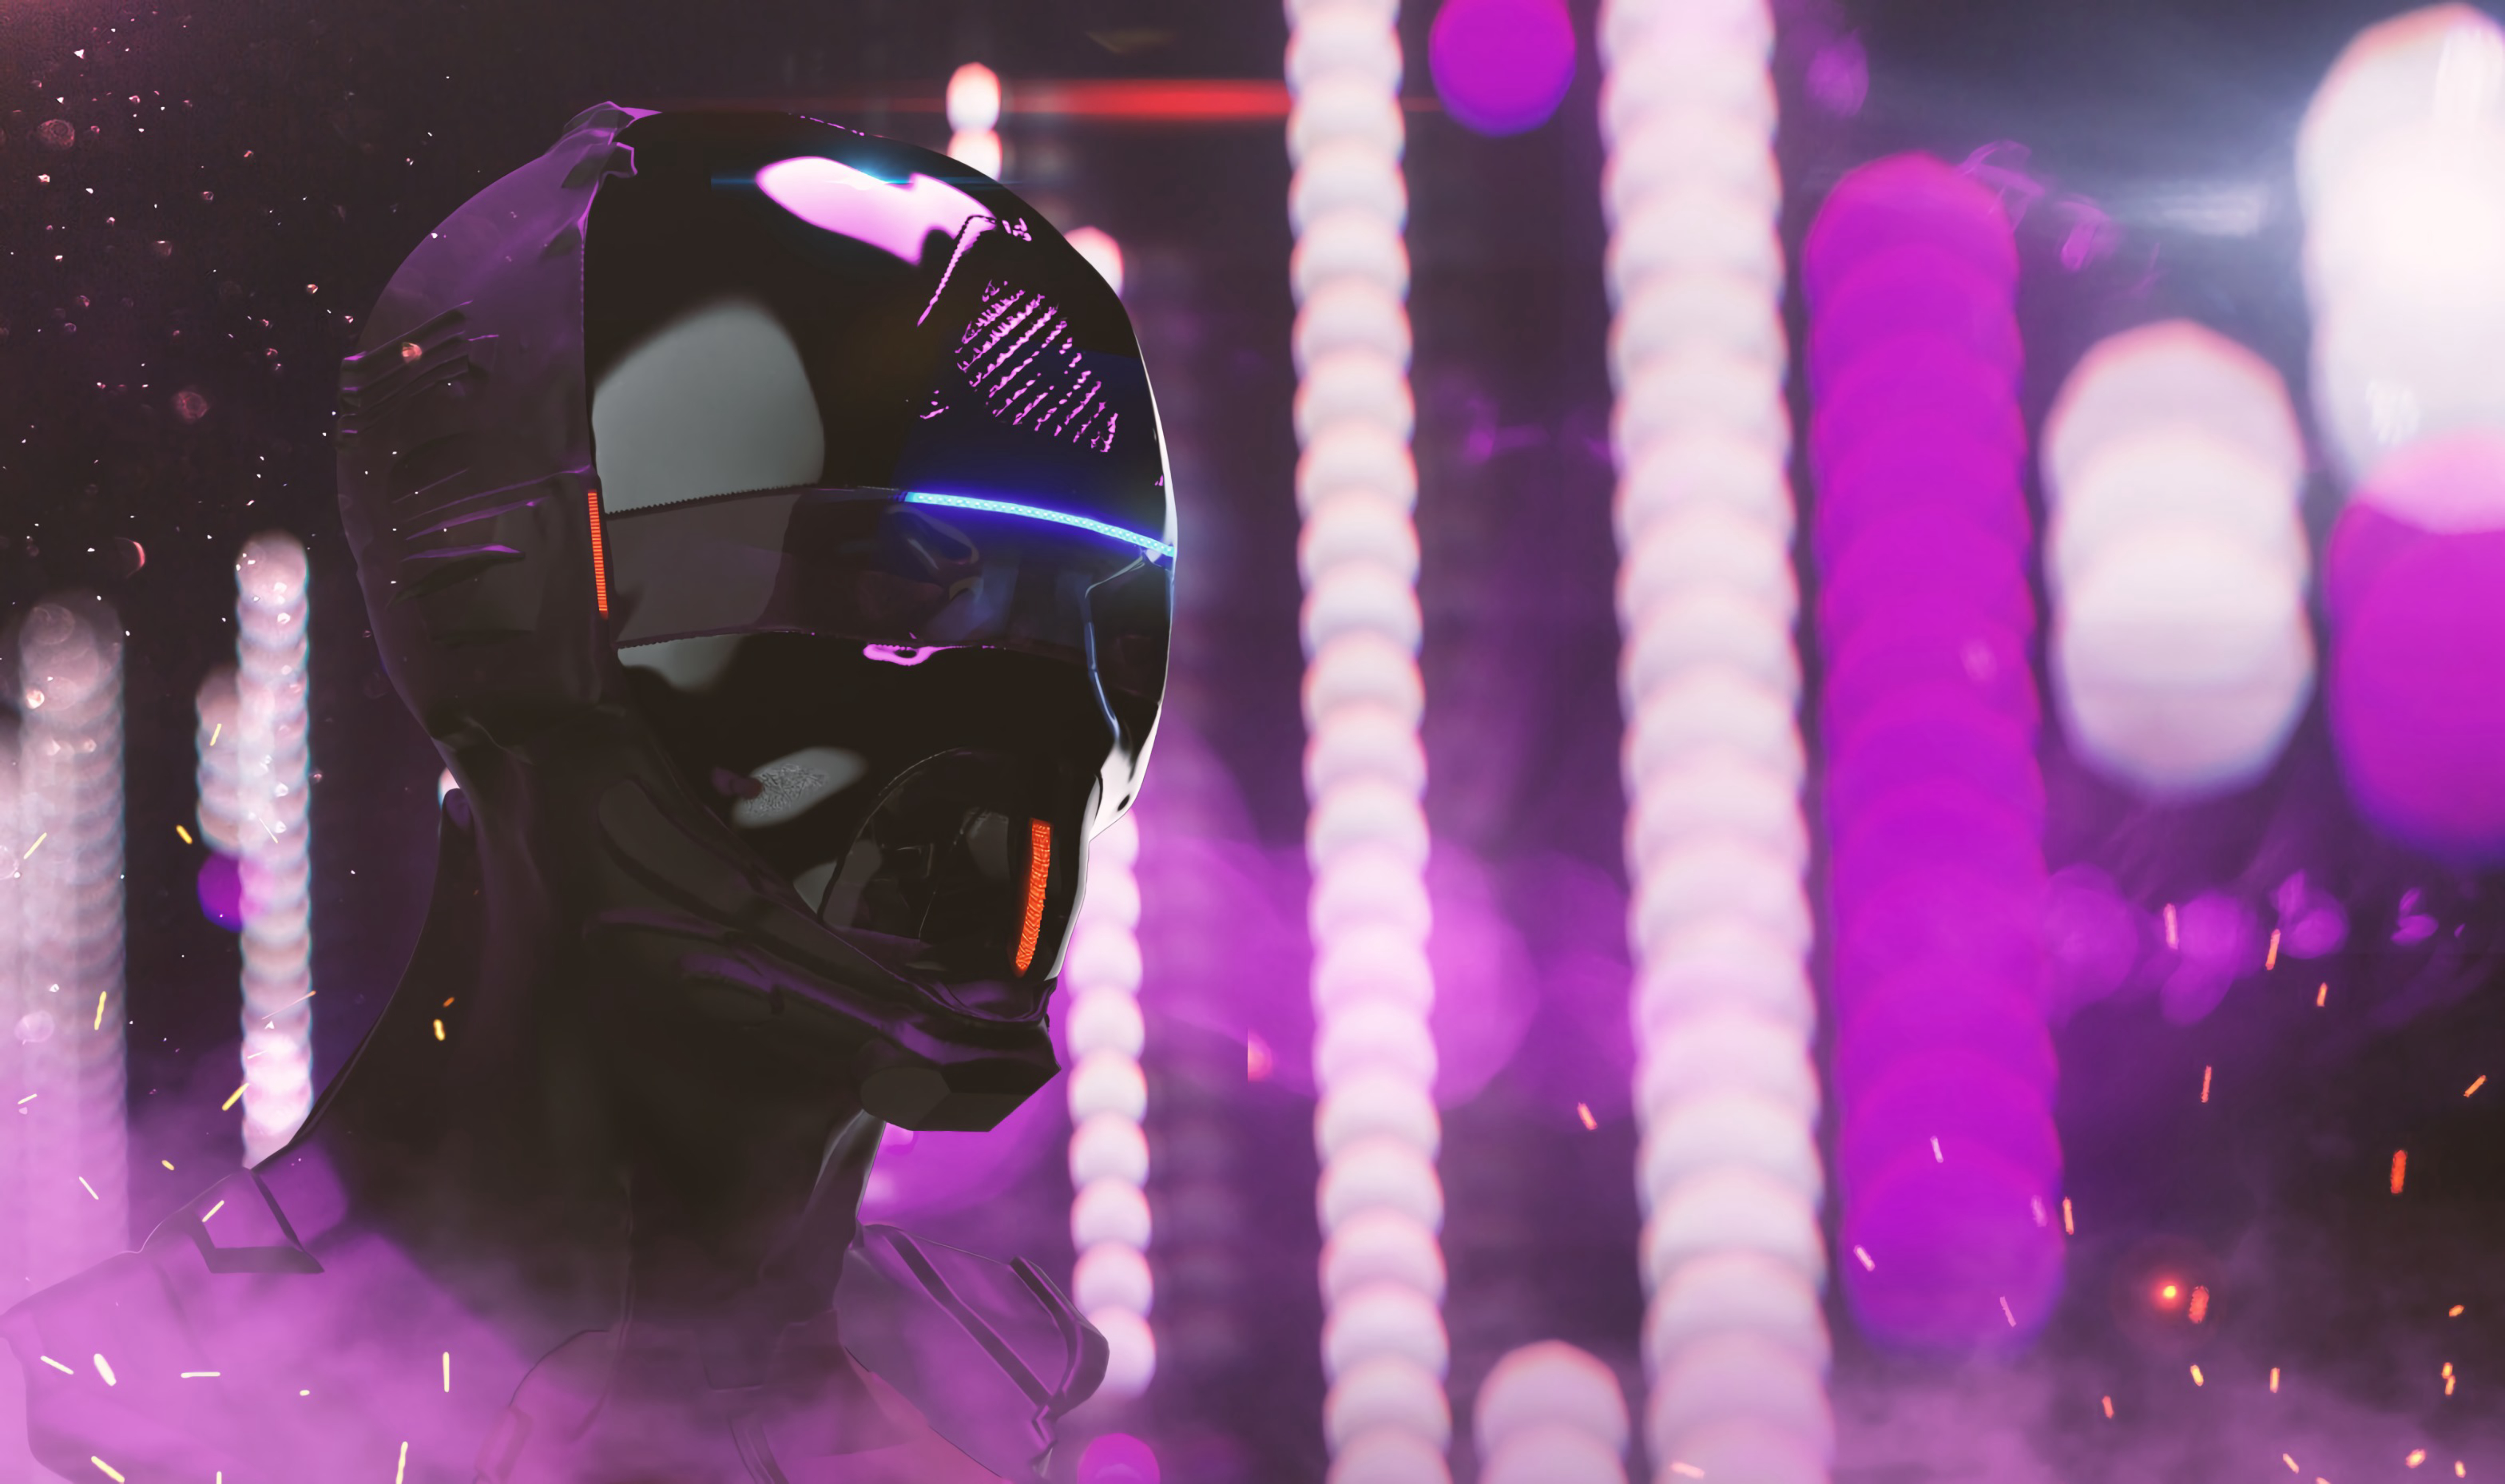 155328 Screensavers and Wallpapers Robot for phone. Download Art, Cyberpunk, Neon, Backlight, Illumination, Mask, Helmet, Head, Robot pictures for free